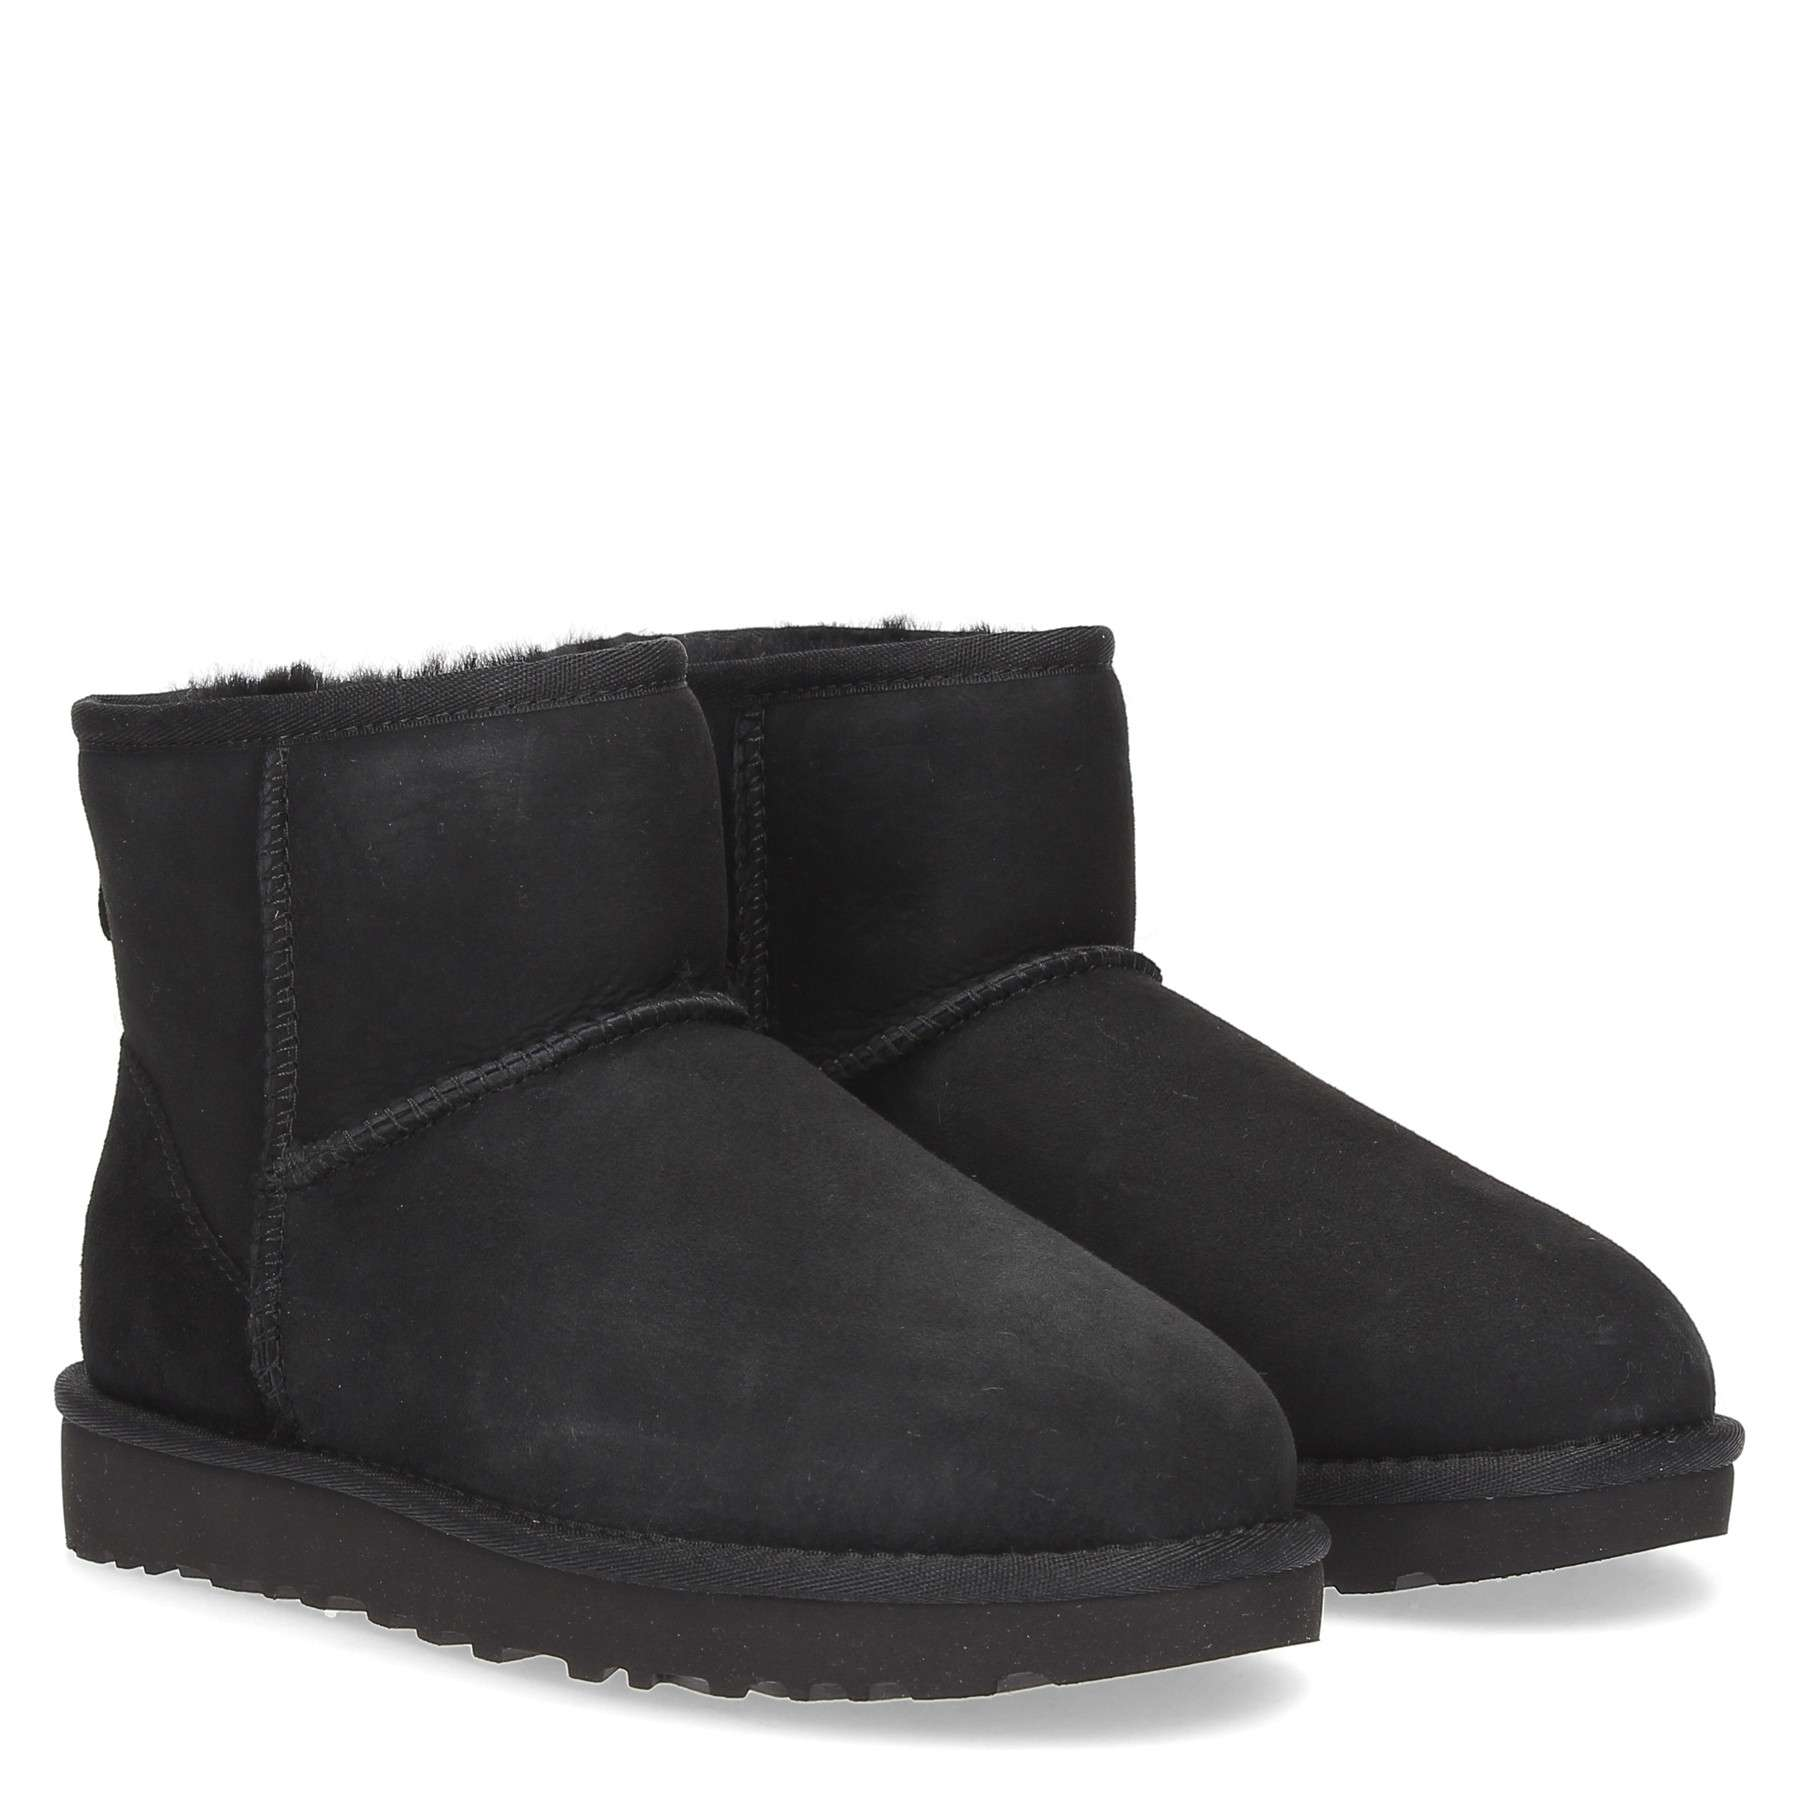 https://www.parmax.com/media/catalog/product/a/i/AI-outlet_parmax.-stivaletto-donna-Ugg-1016222-B_1.jpg